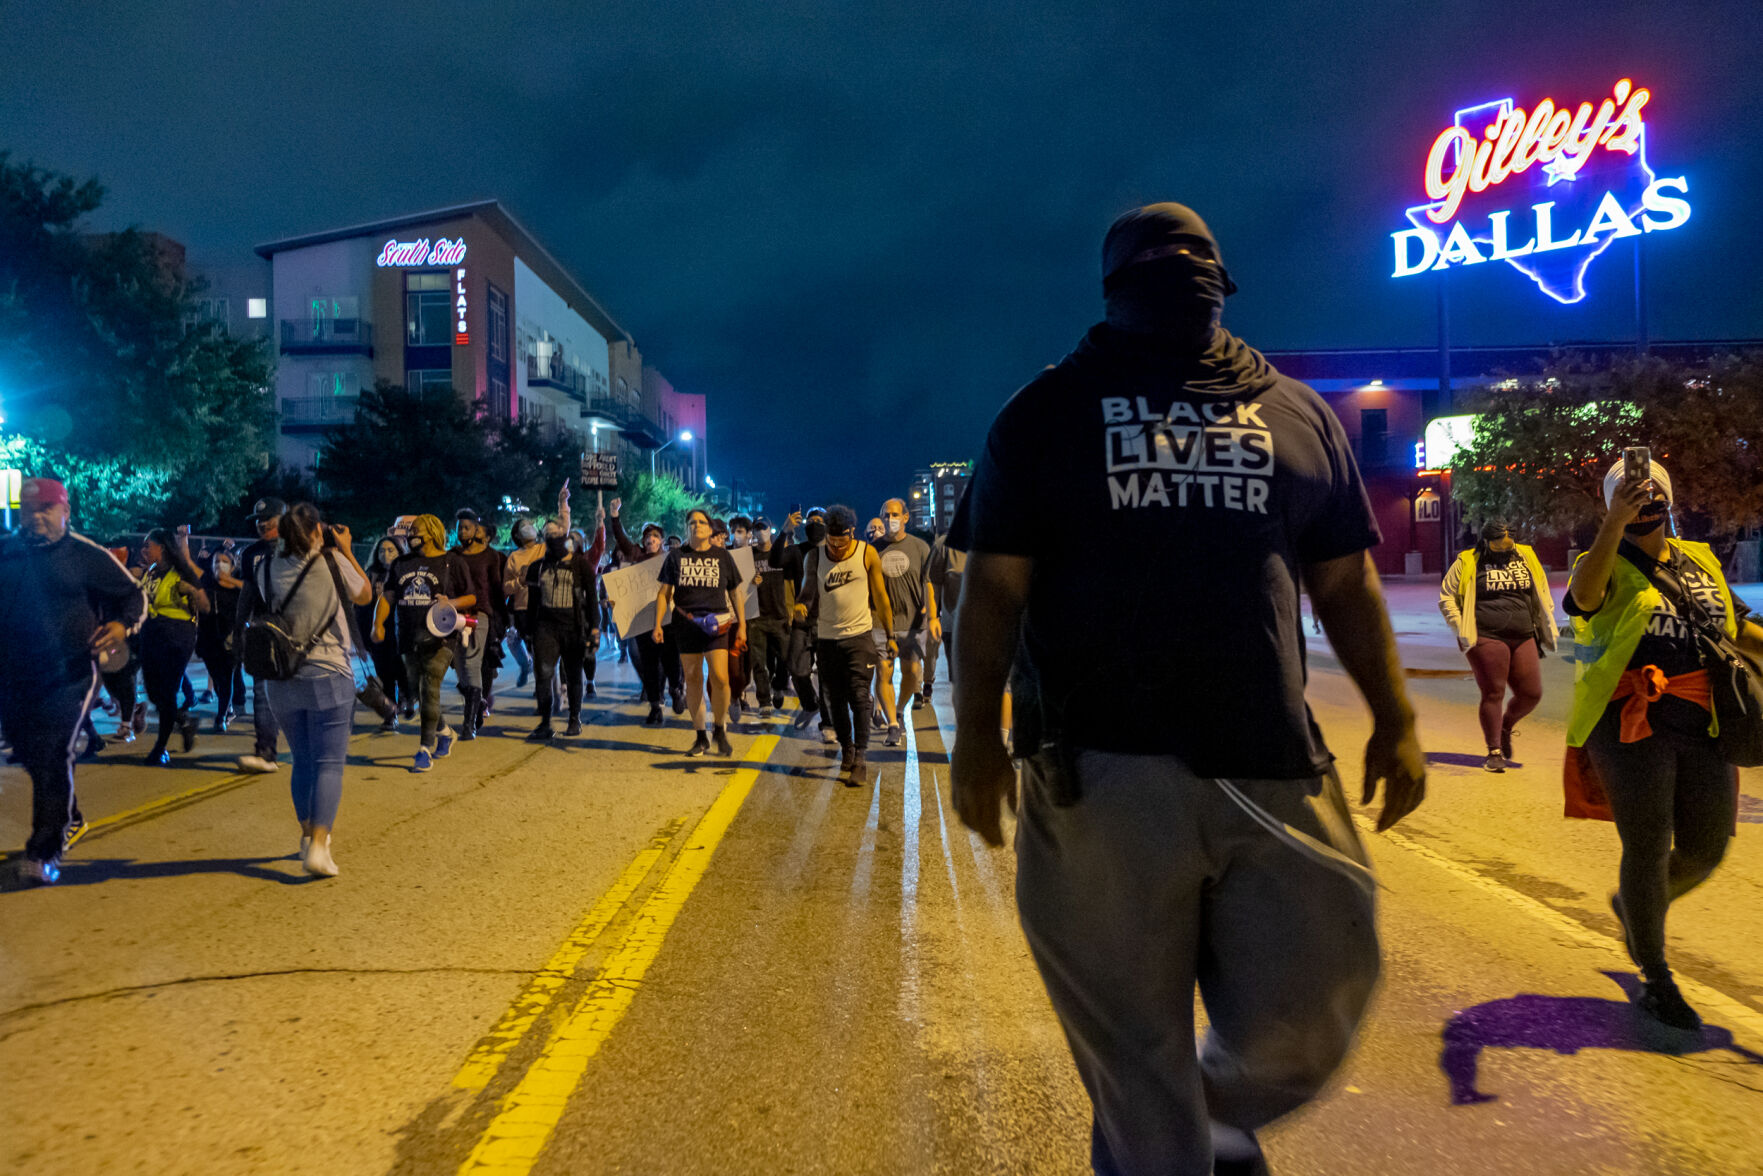 Photos: Activist groups march throughout Dallas, protest after Breonna Taylor grand jury decision